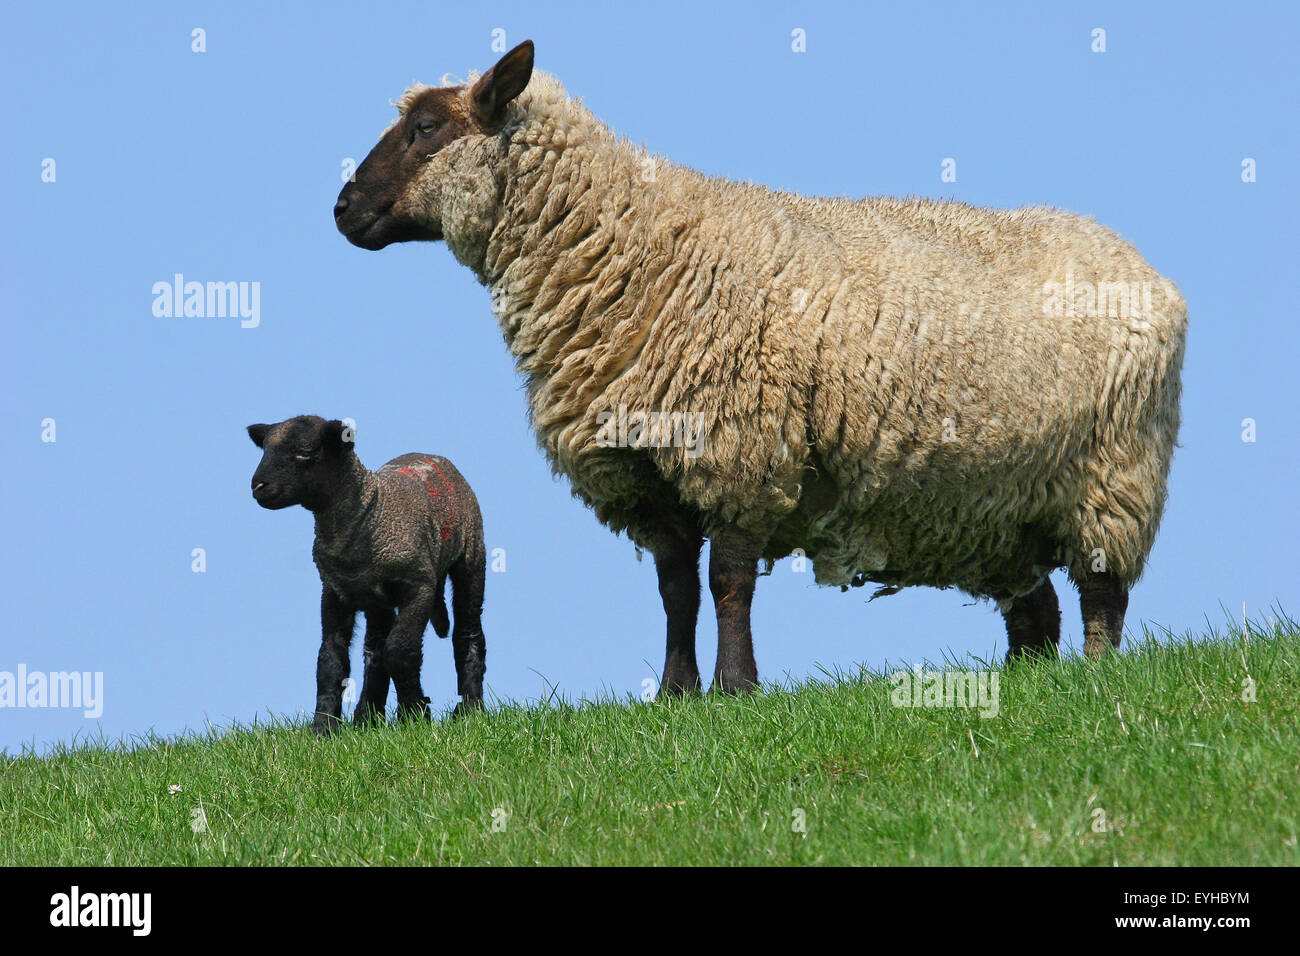 Sheep (Ovis ammon f.aries), black lamb and ewe, Schleswig-Holstein, Germany - Stock Image